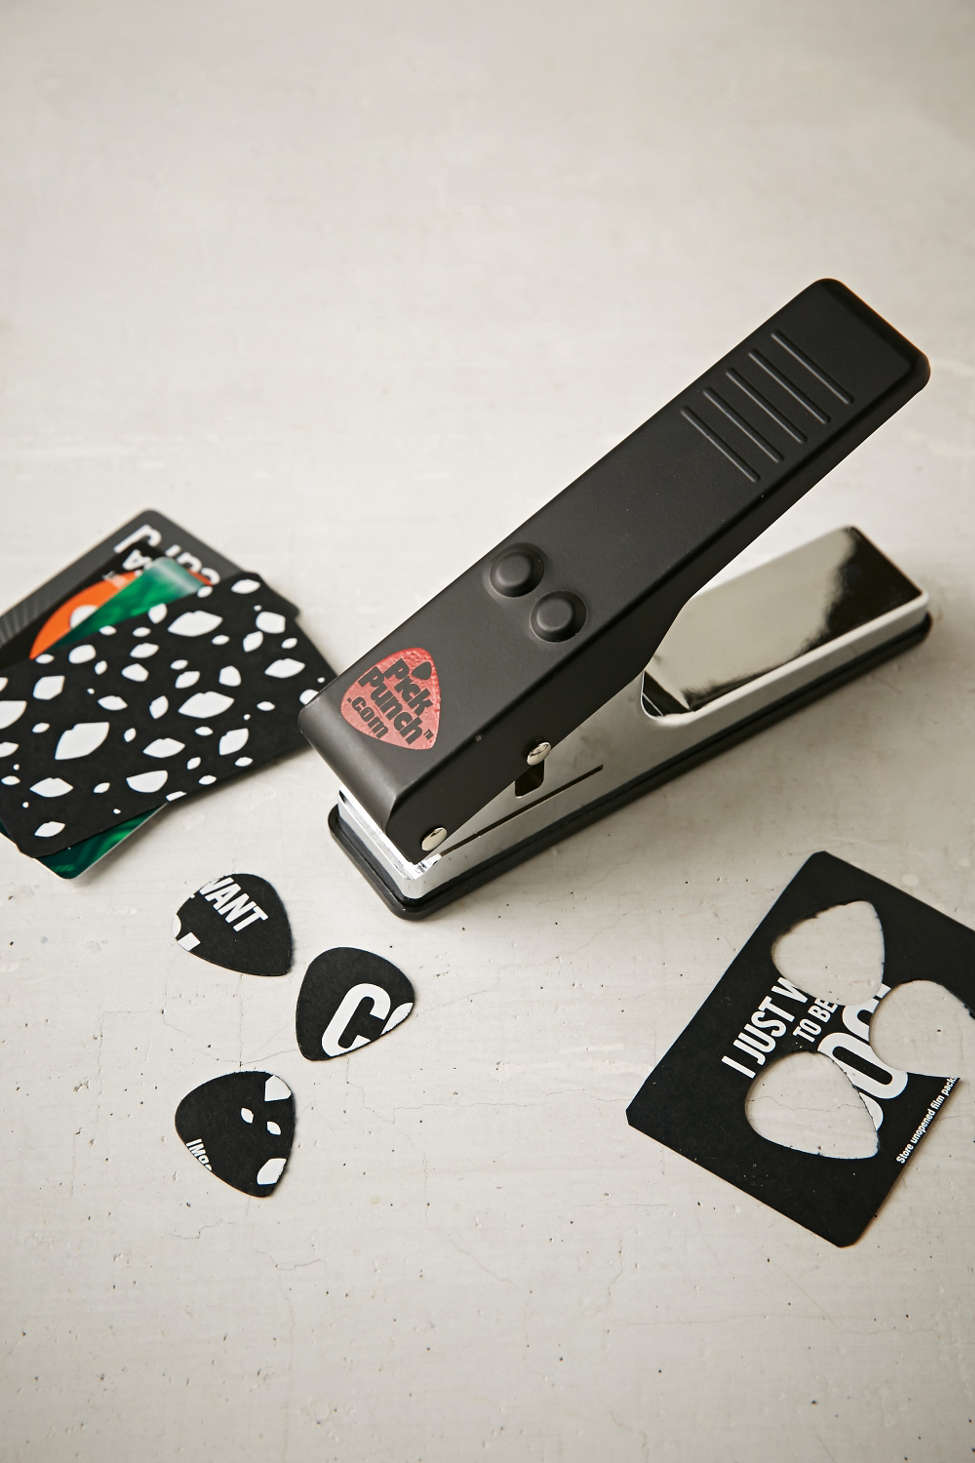 Guitar Pick Punch - Make a pick out of any gift card or hard plastic!